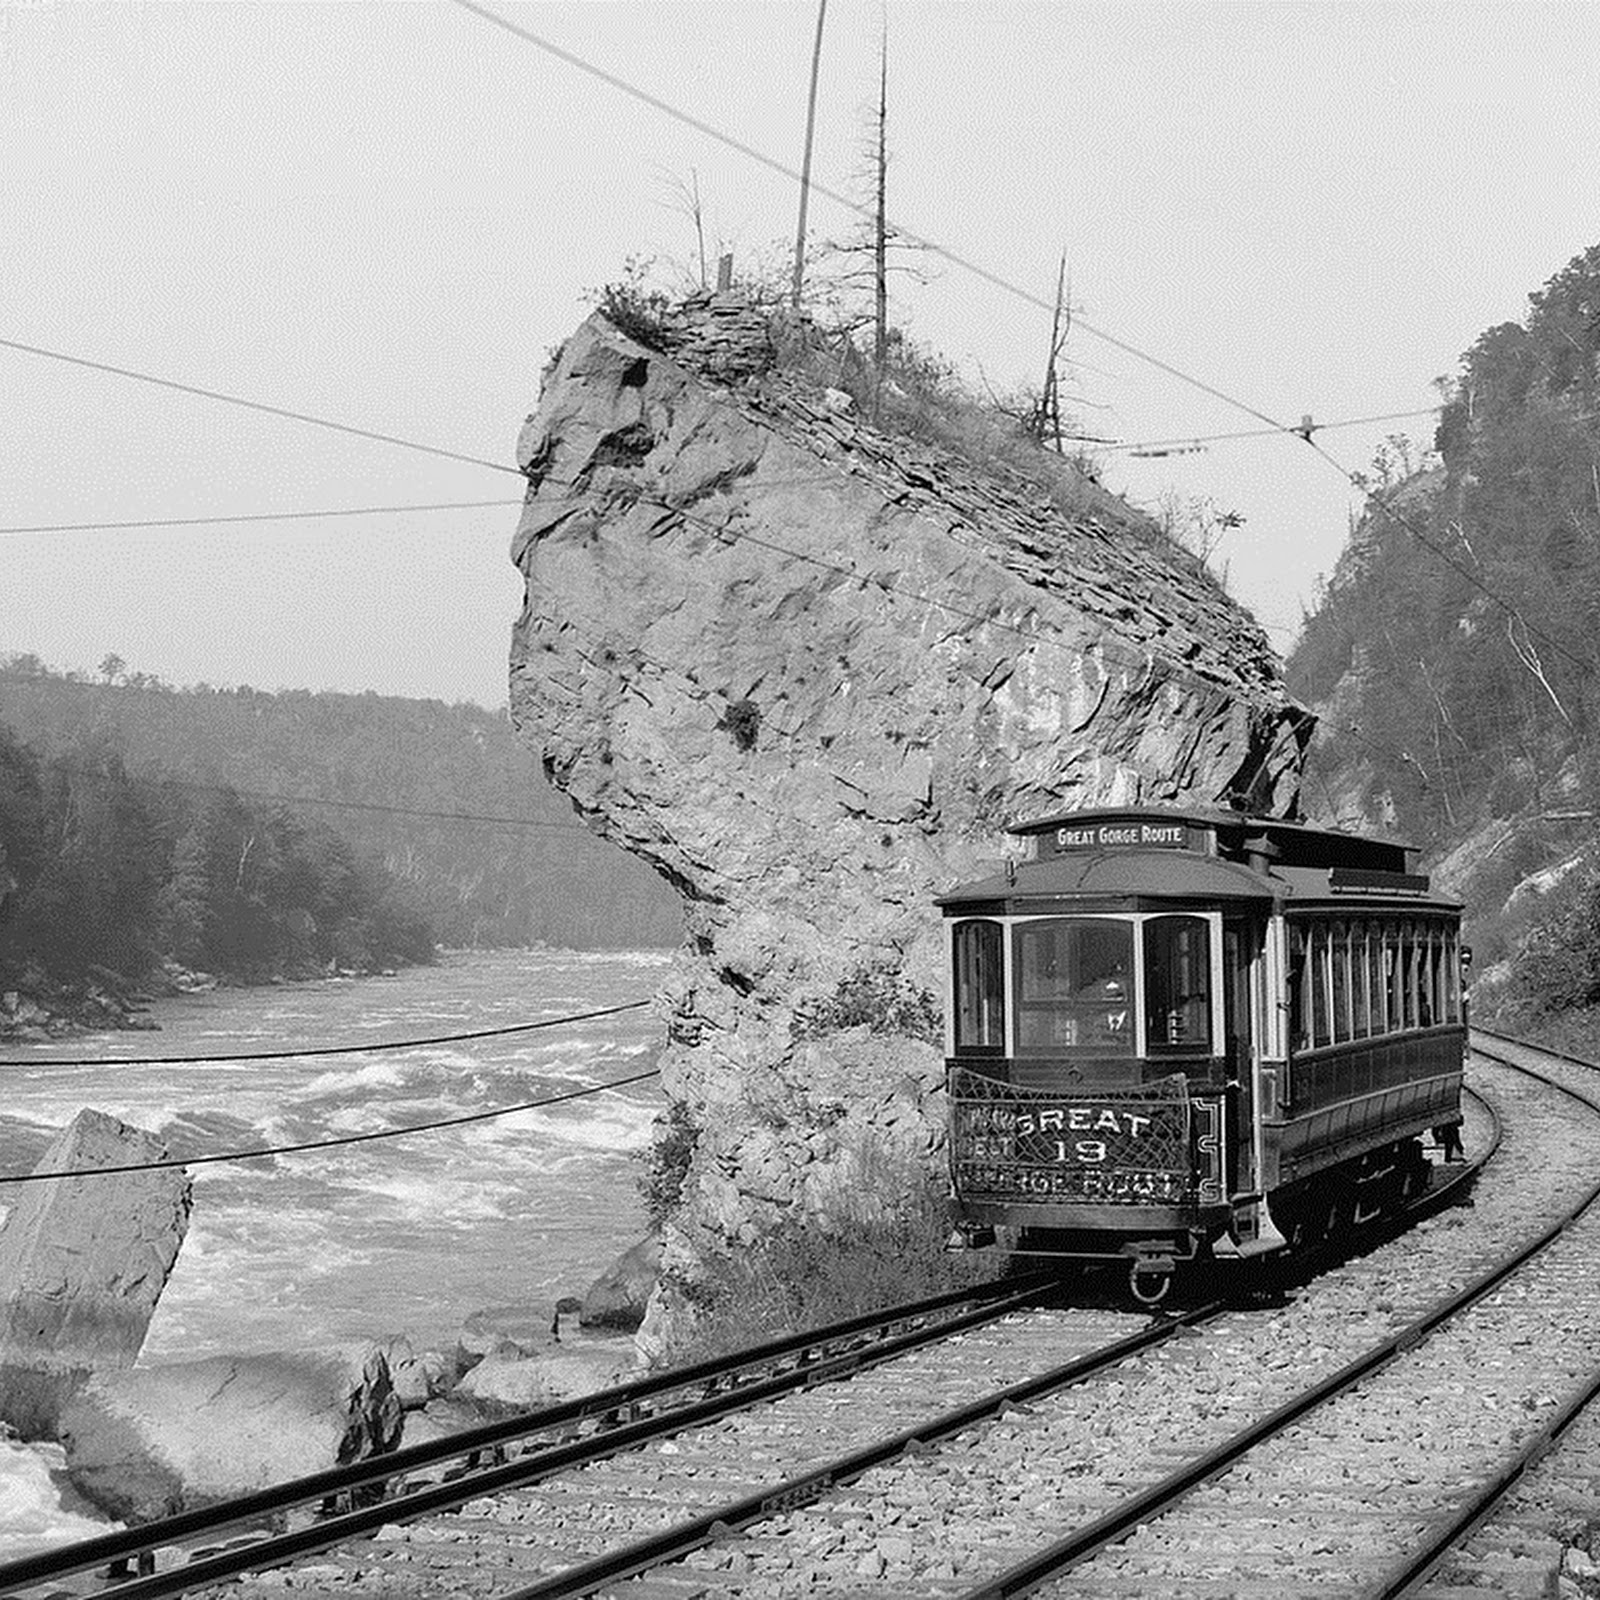 The Niagara Gorge Railroad